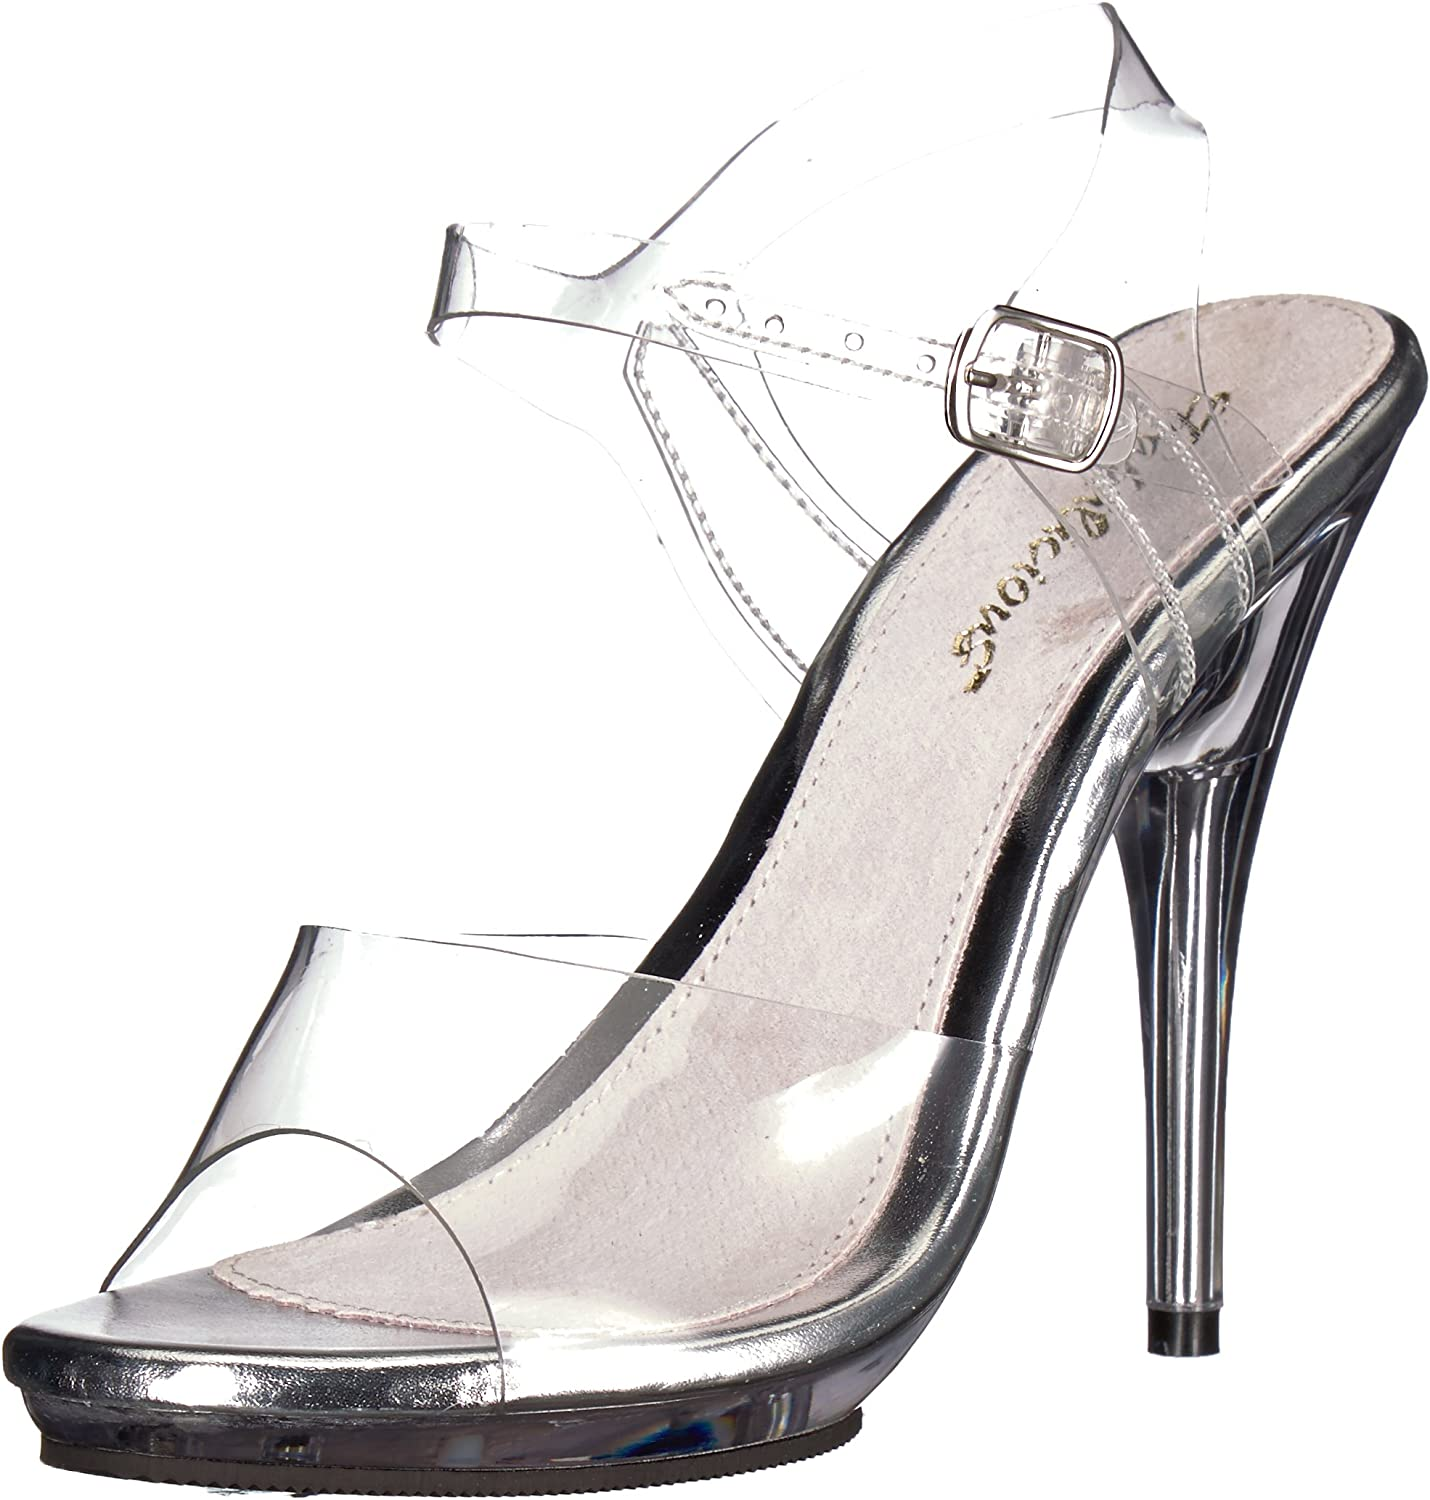 Tirahse Comfortable Women's Solid Patent Leather Kitten Heels Round Closed Toe Lace Up Pumps-shoes